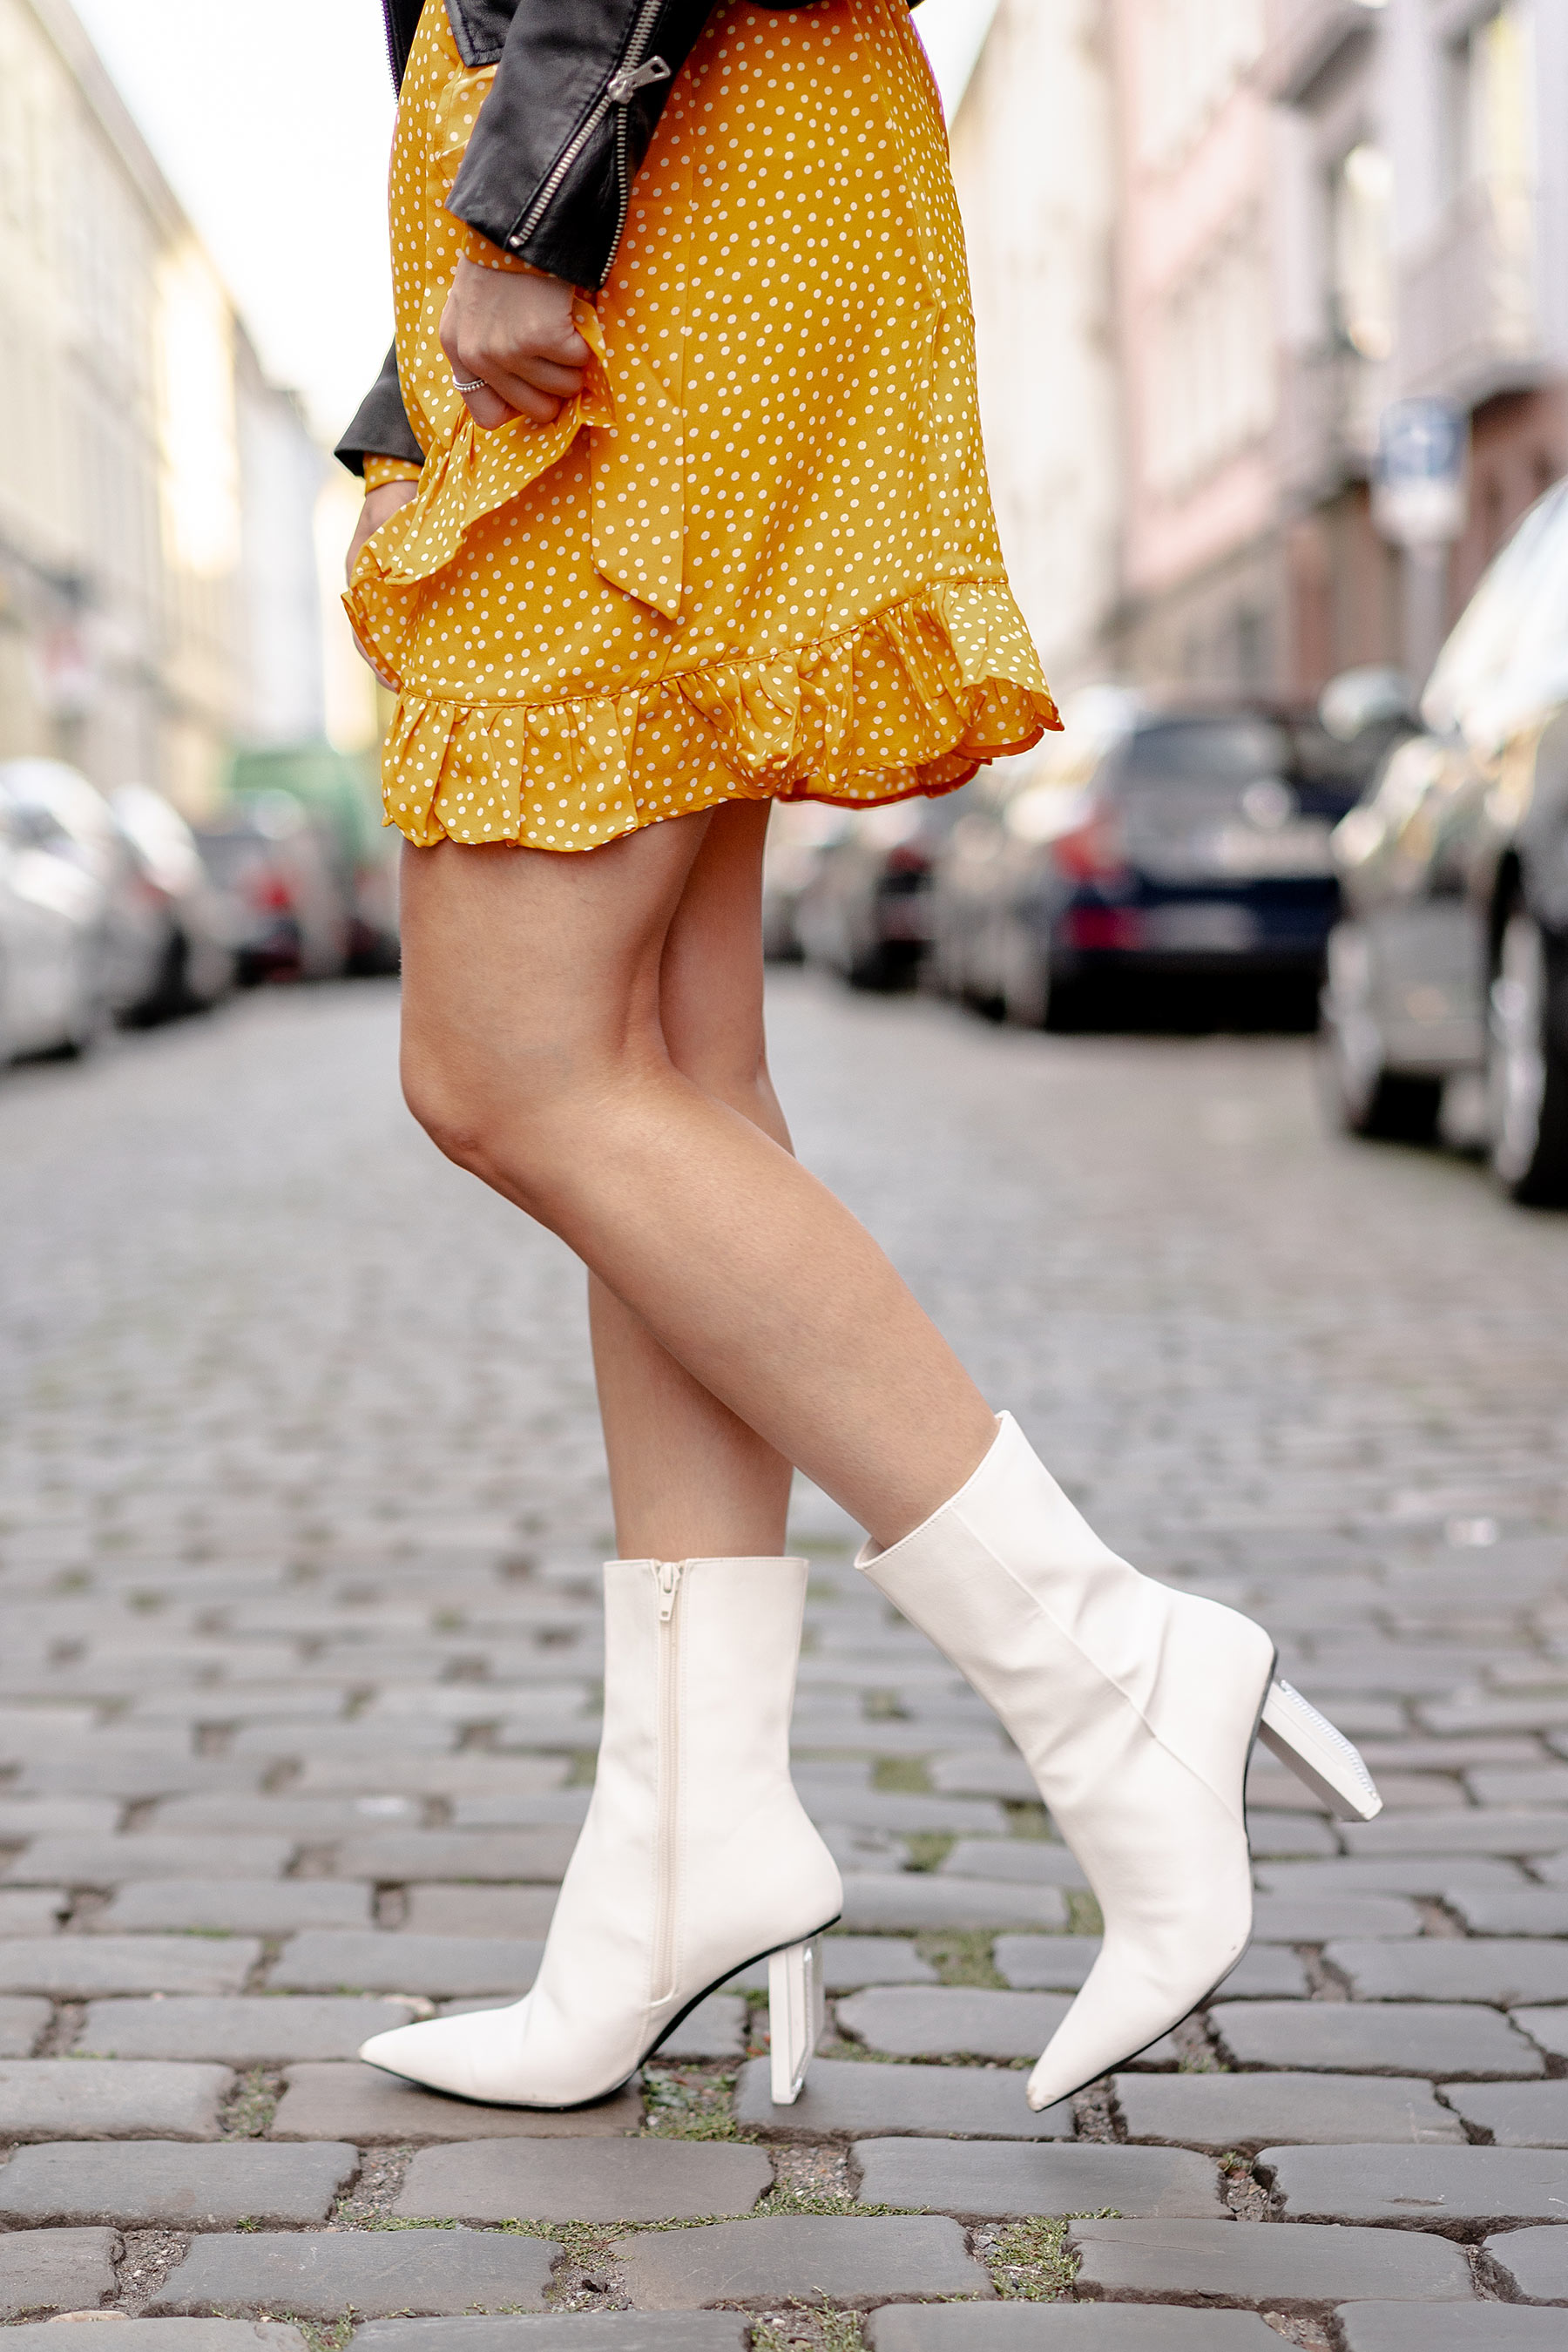 weisse stiefel outfit streetstyle outfit modeblog sunnyinga